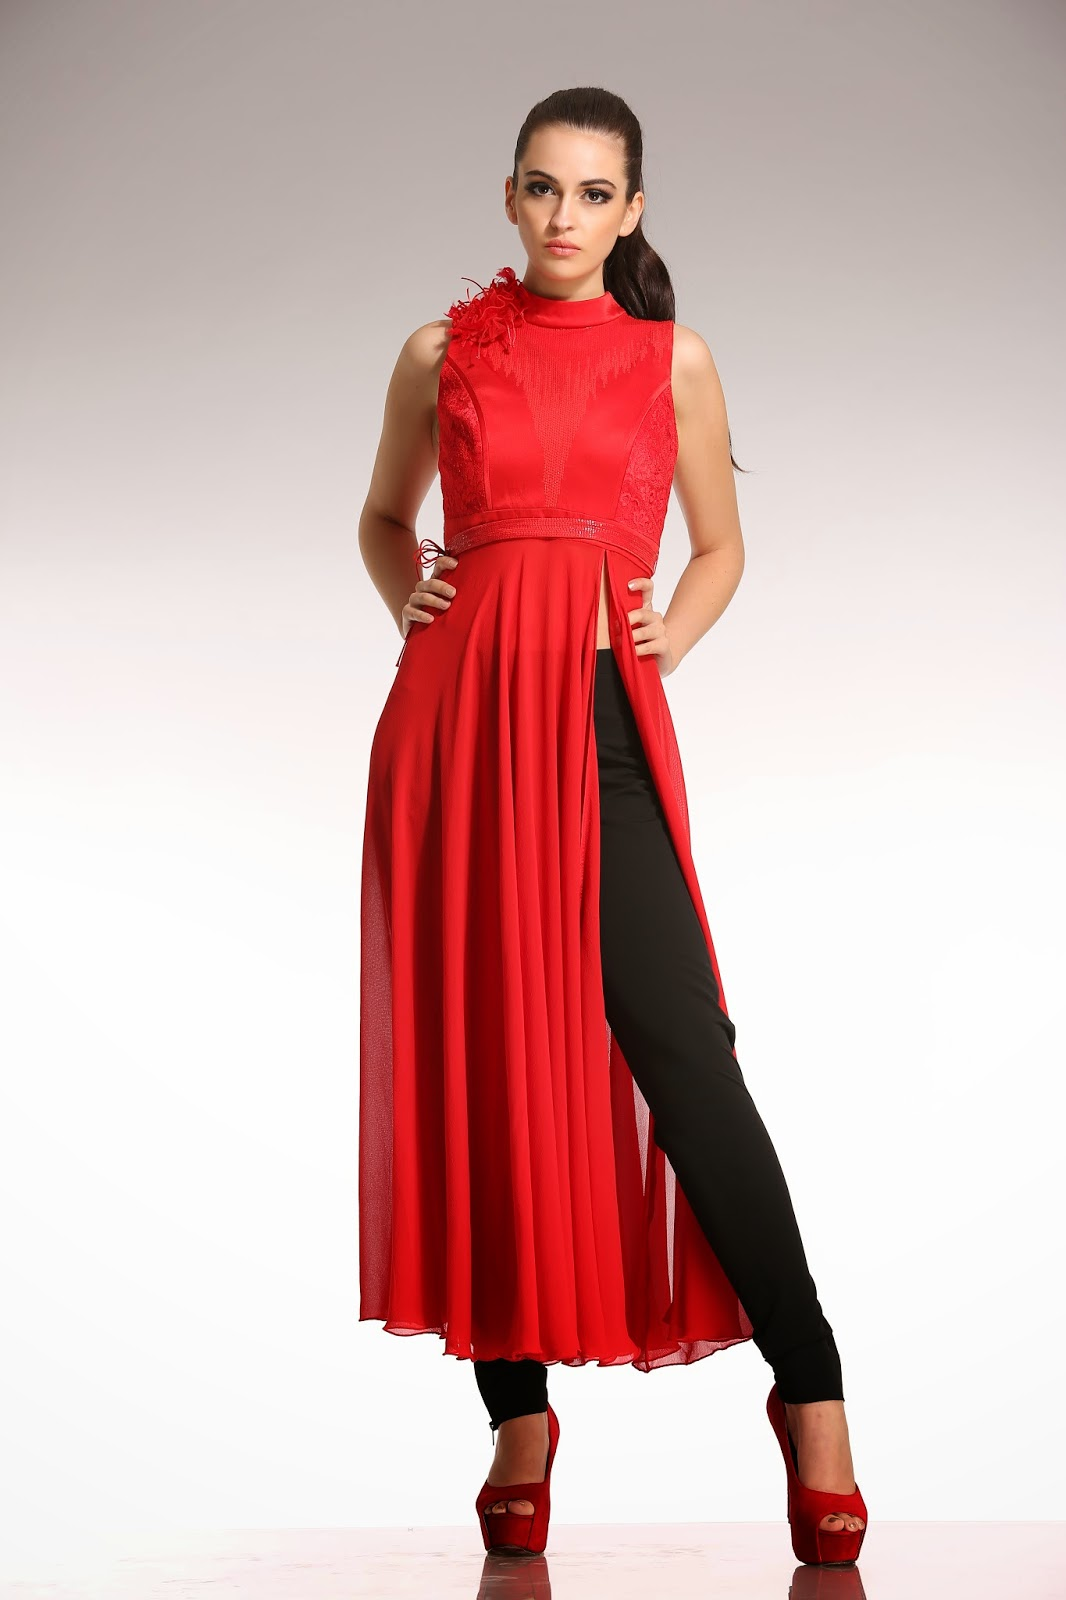 Trendy womens clothes online